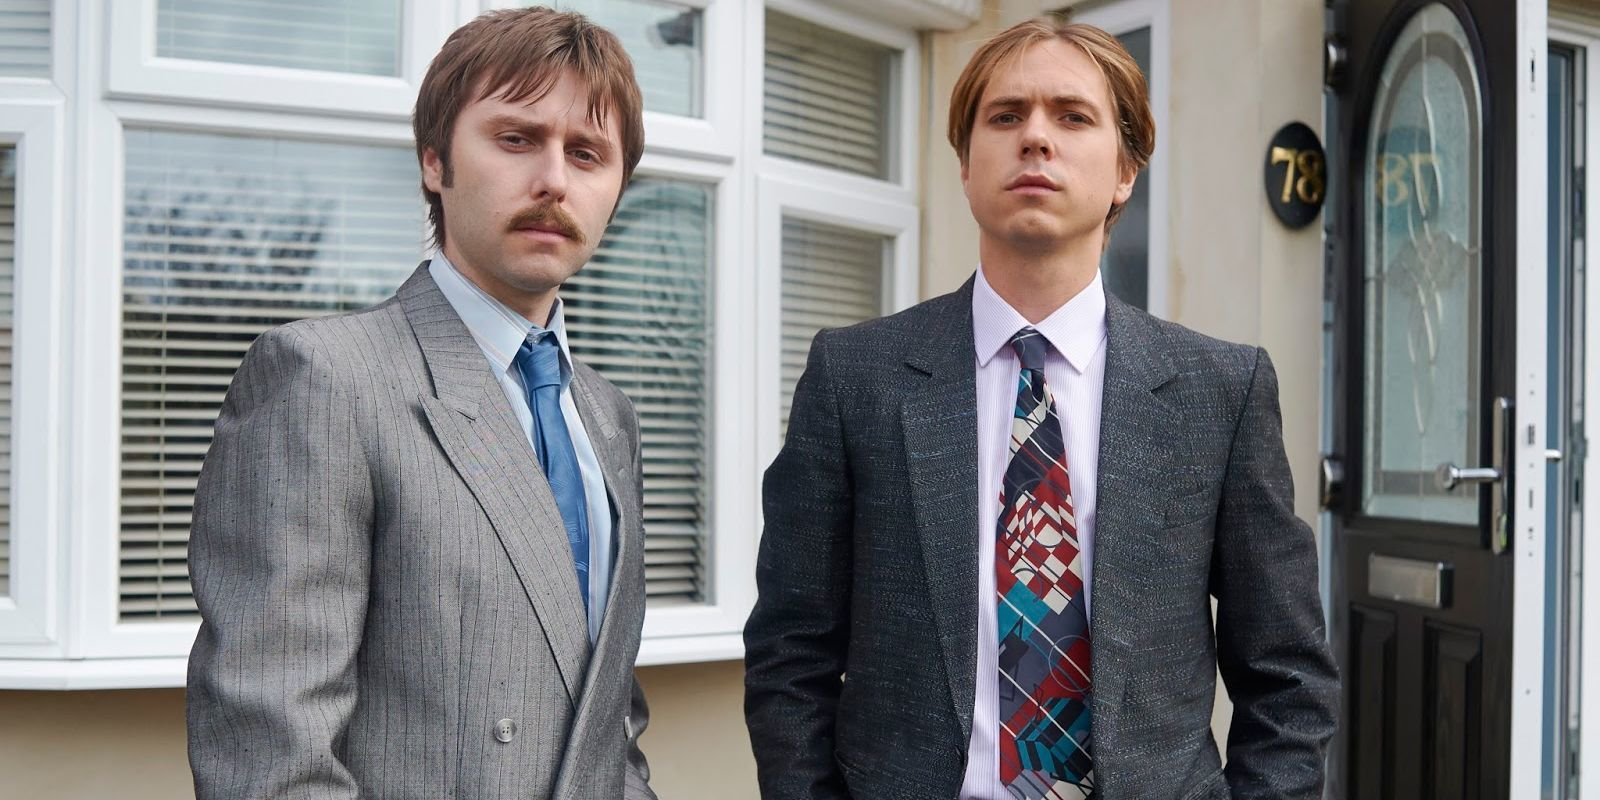 Inbetweeners Stars Reuniting For New Comedy White Gold